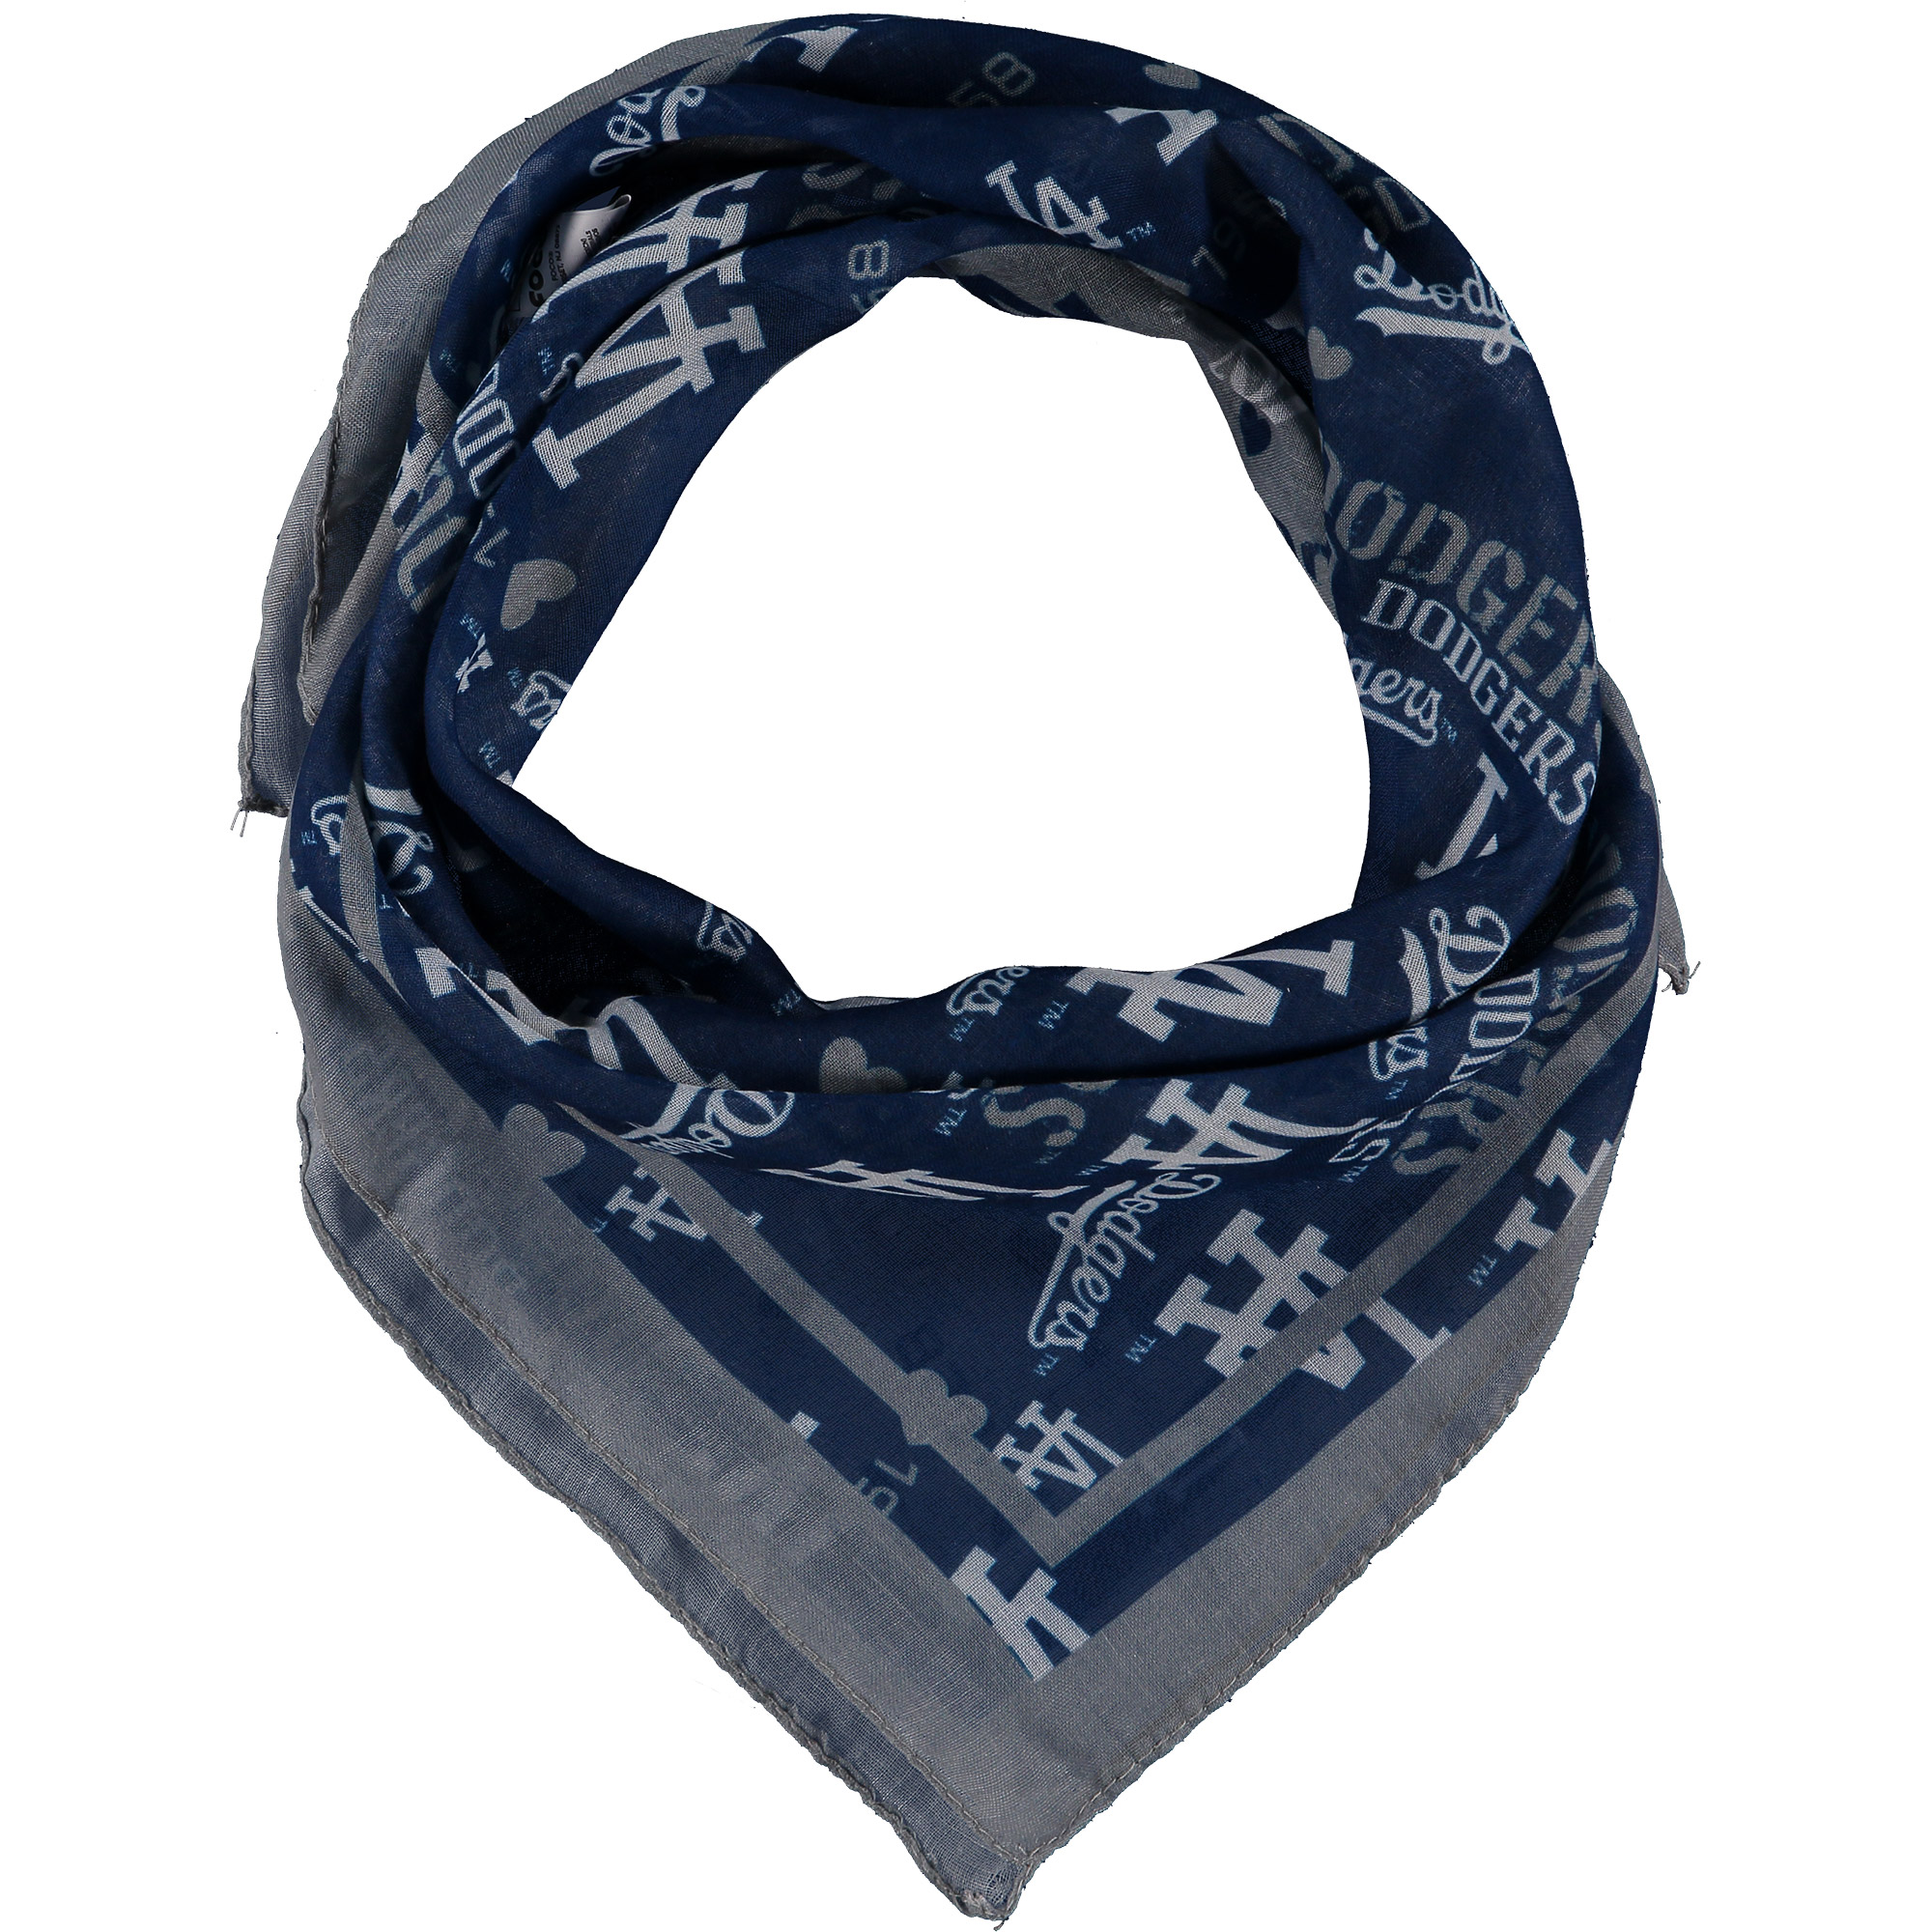 Los Angeles Dodgers Women's Lightweight Repeat Square Scarf - No Size